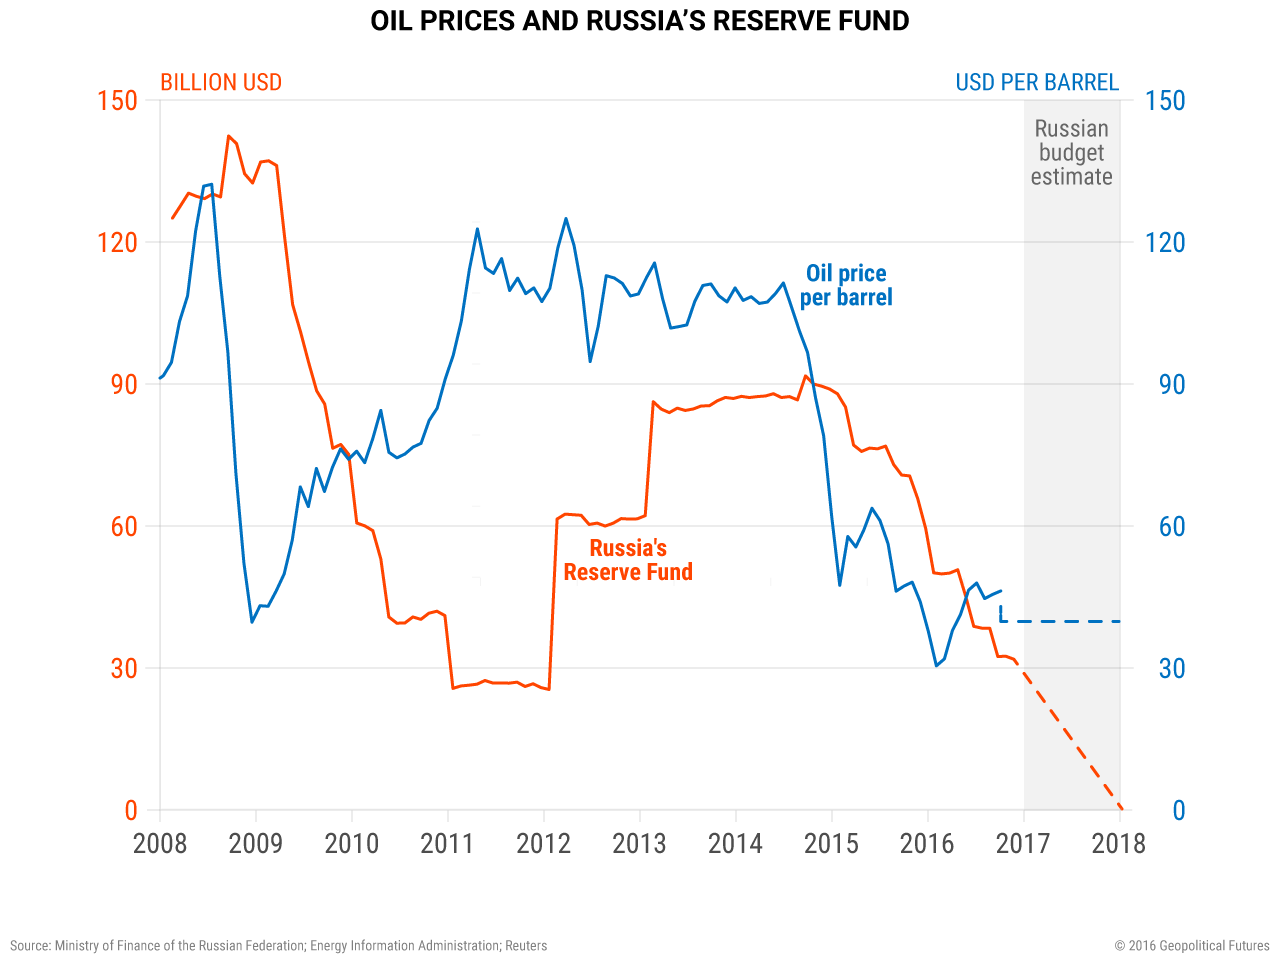 Russia Reserve Fund and Oil